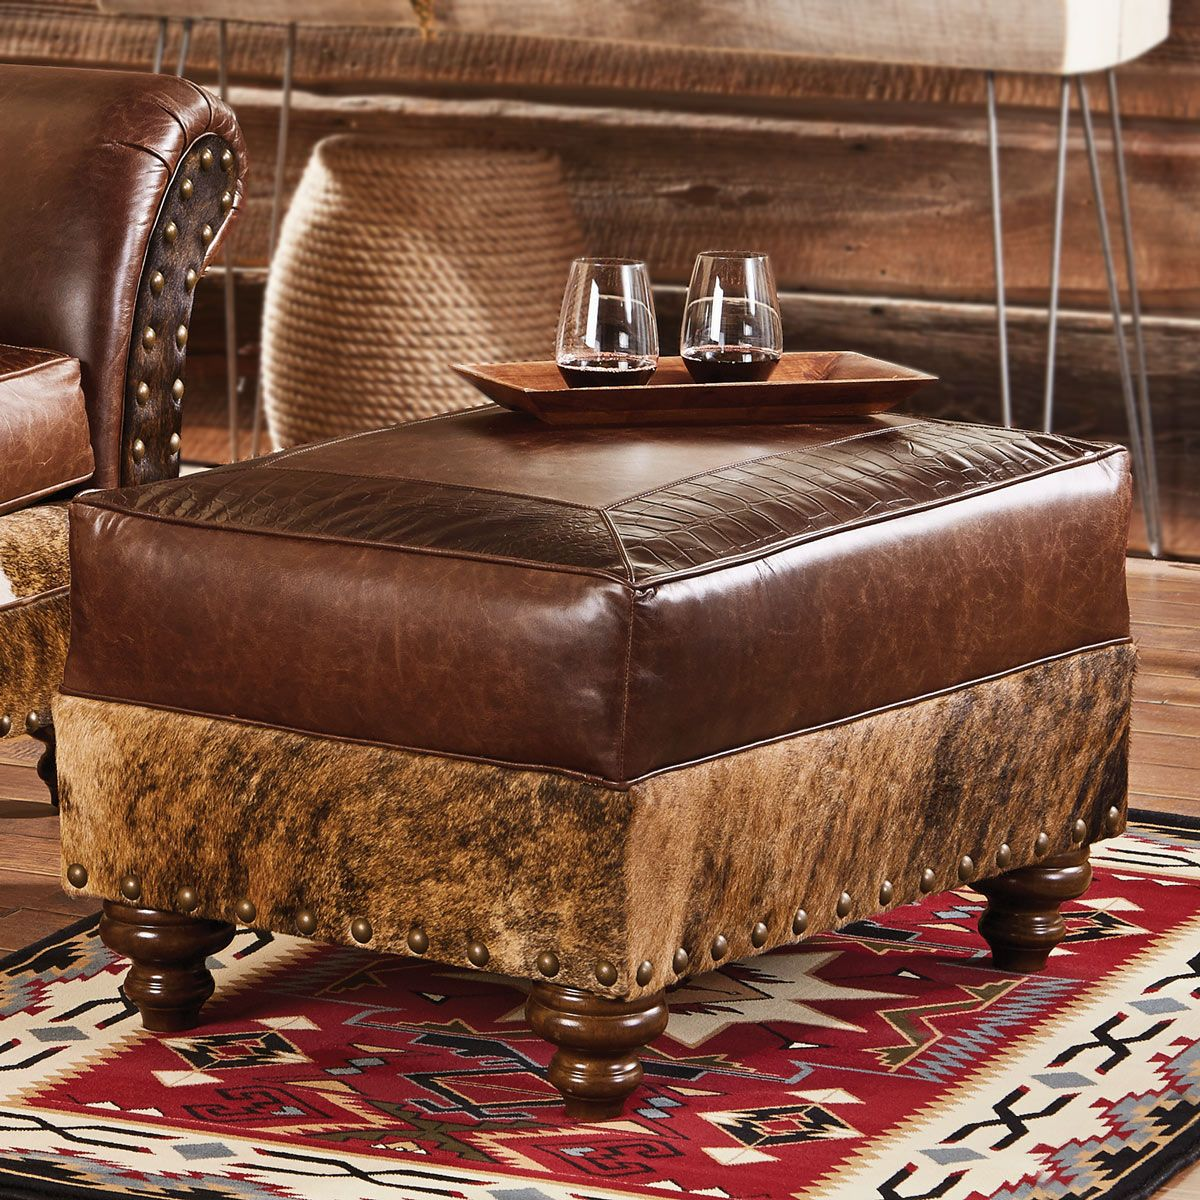 Groovy Western Leather Furniture Cowboy Furnishings From Lones Lamtechconsult Wood Chair Design Ideas Lamtechconsultcom